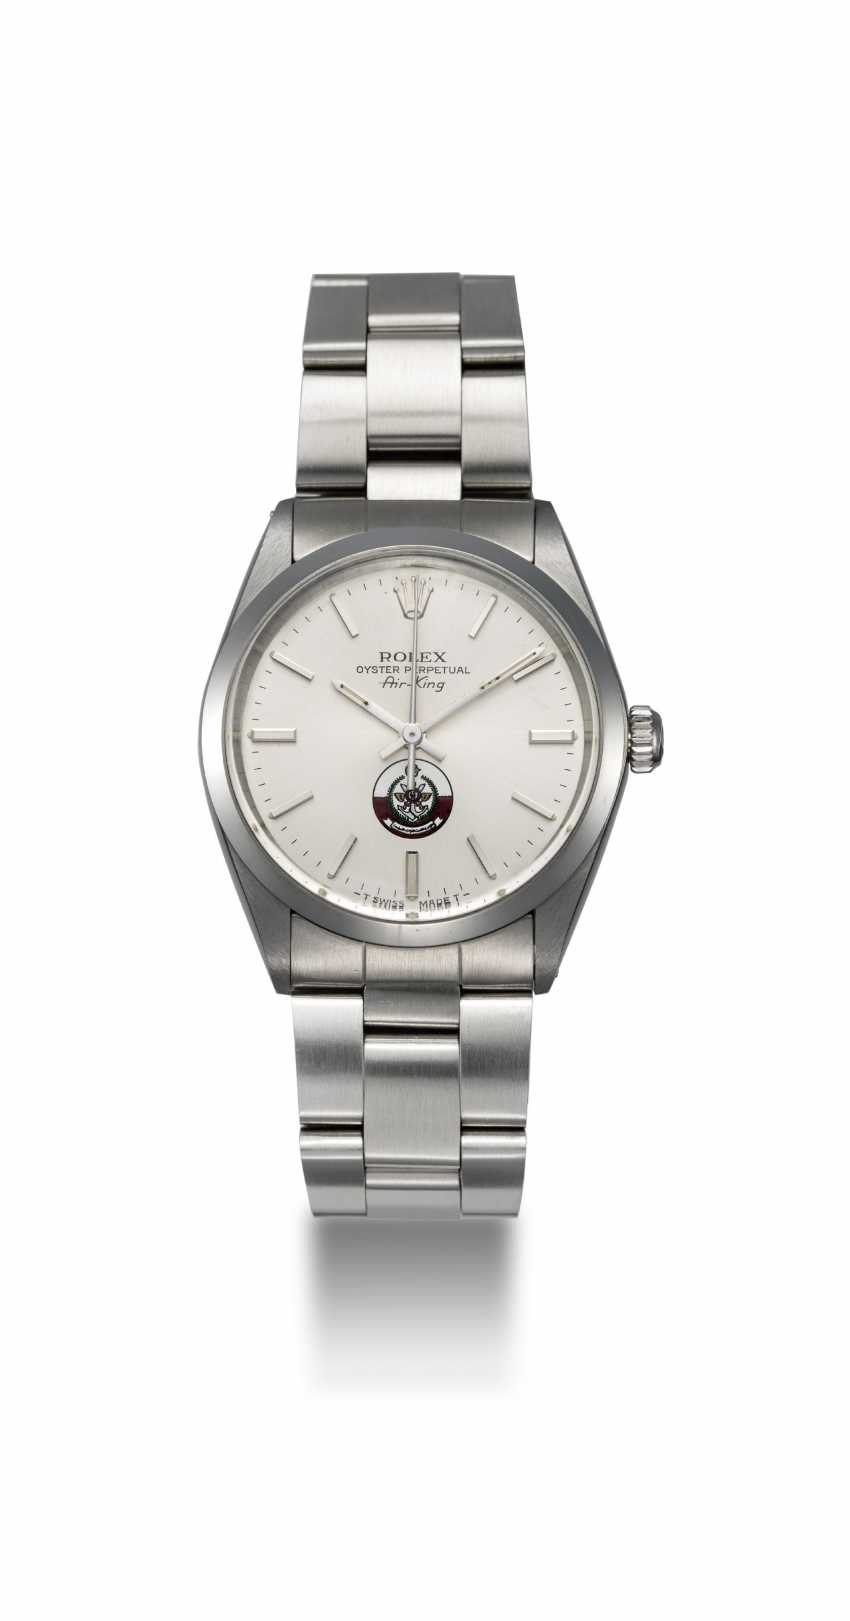 ROLEX, A STAINLESS STEEL AIR-KING WITH QATAR ARMED FORCES LOGO, REF. 5500 - photo 3